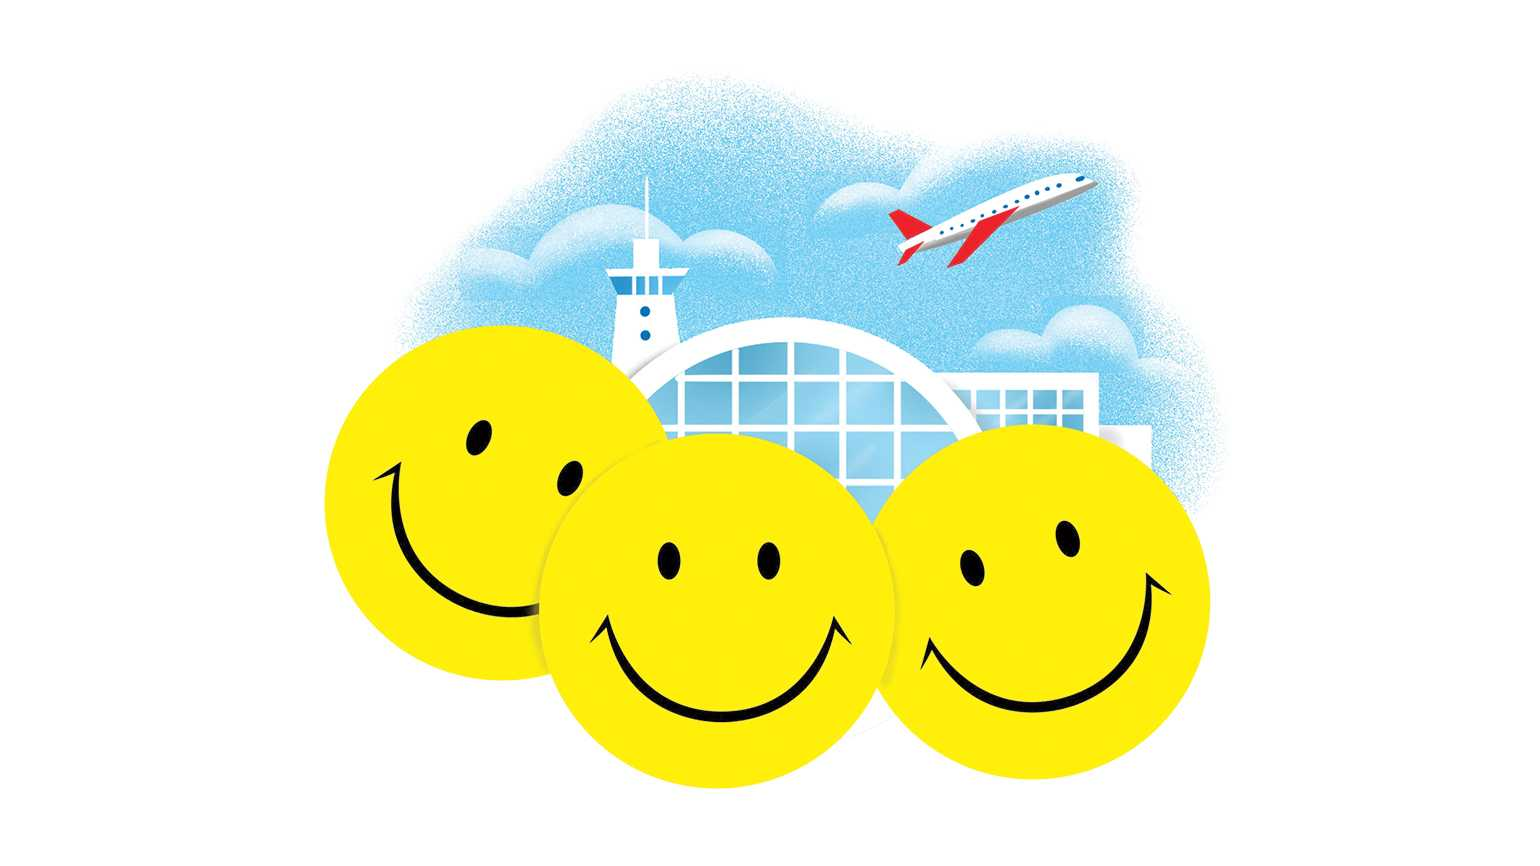 An artist's rendering of three smiley faces in front of an airport.